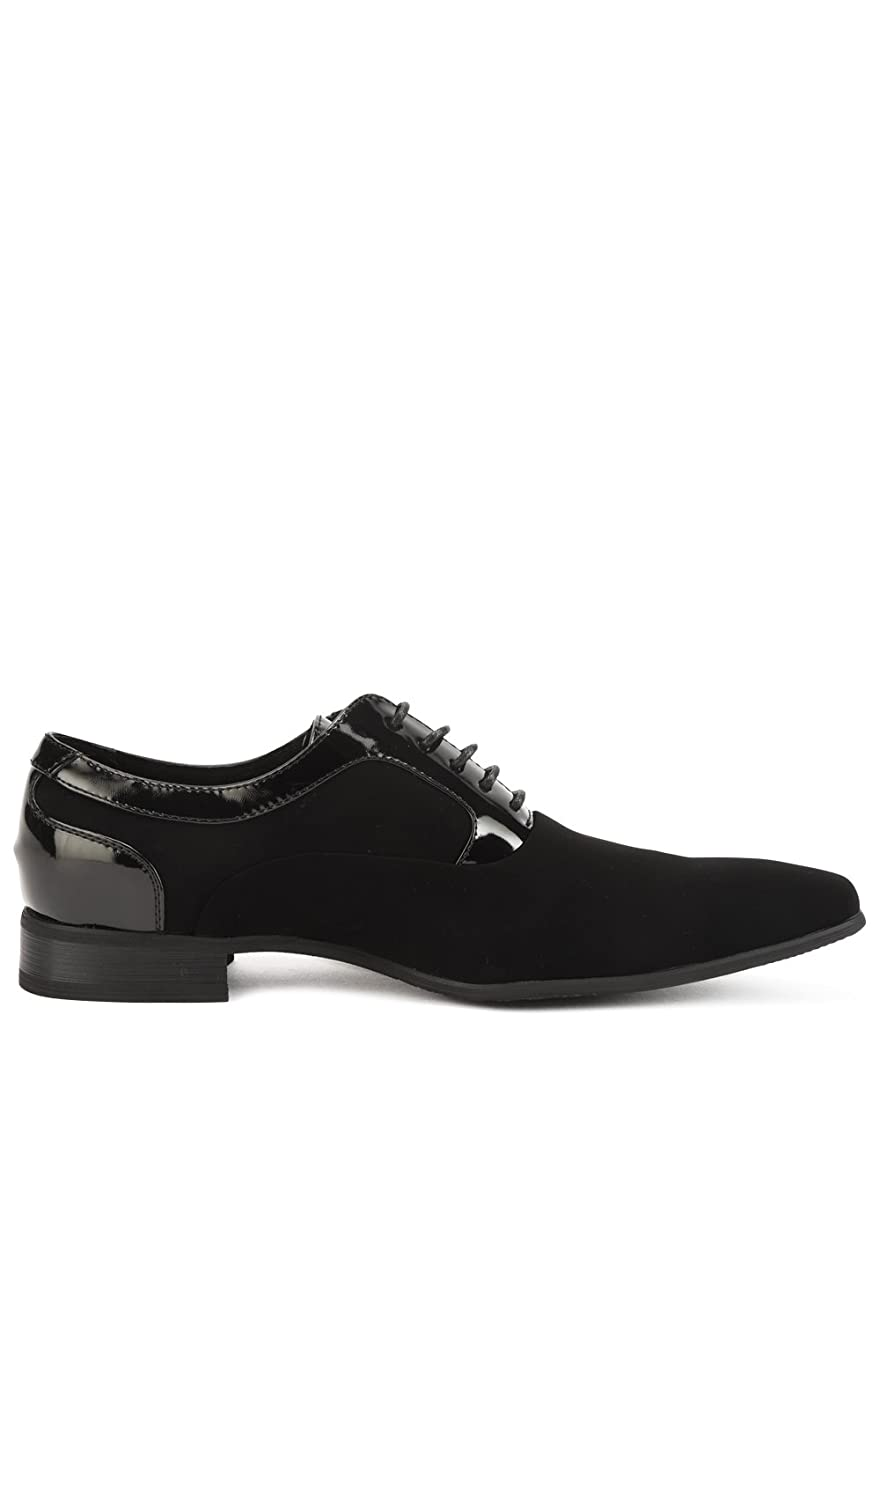 b45a4cbff97 Amazon.com | Shoes with lace with Pointed Toe Perm Men Black | Shoes